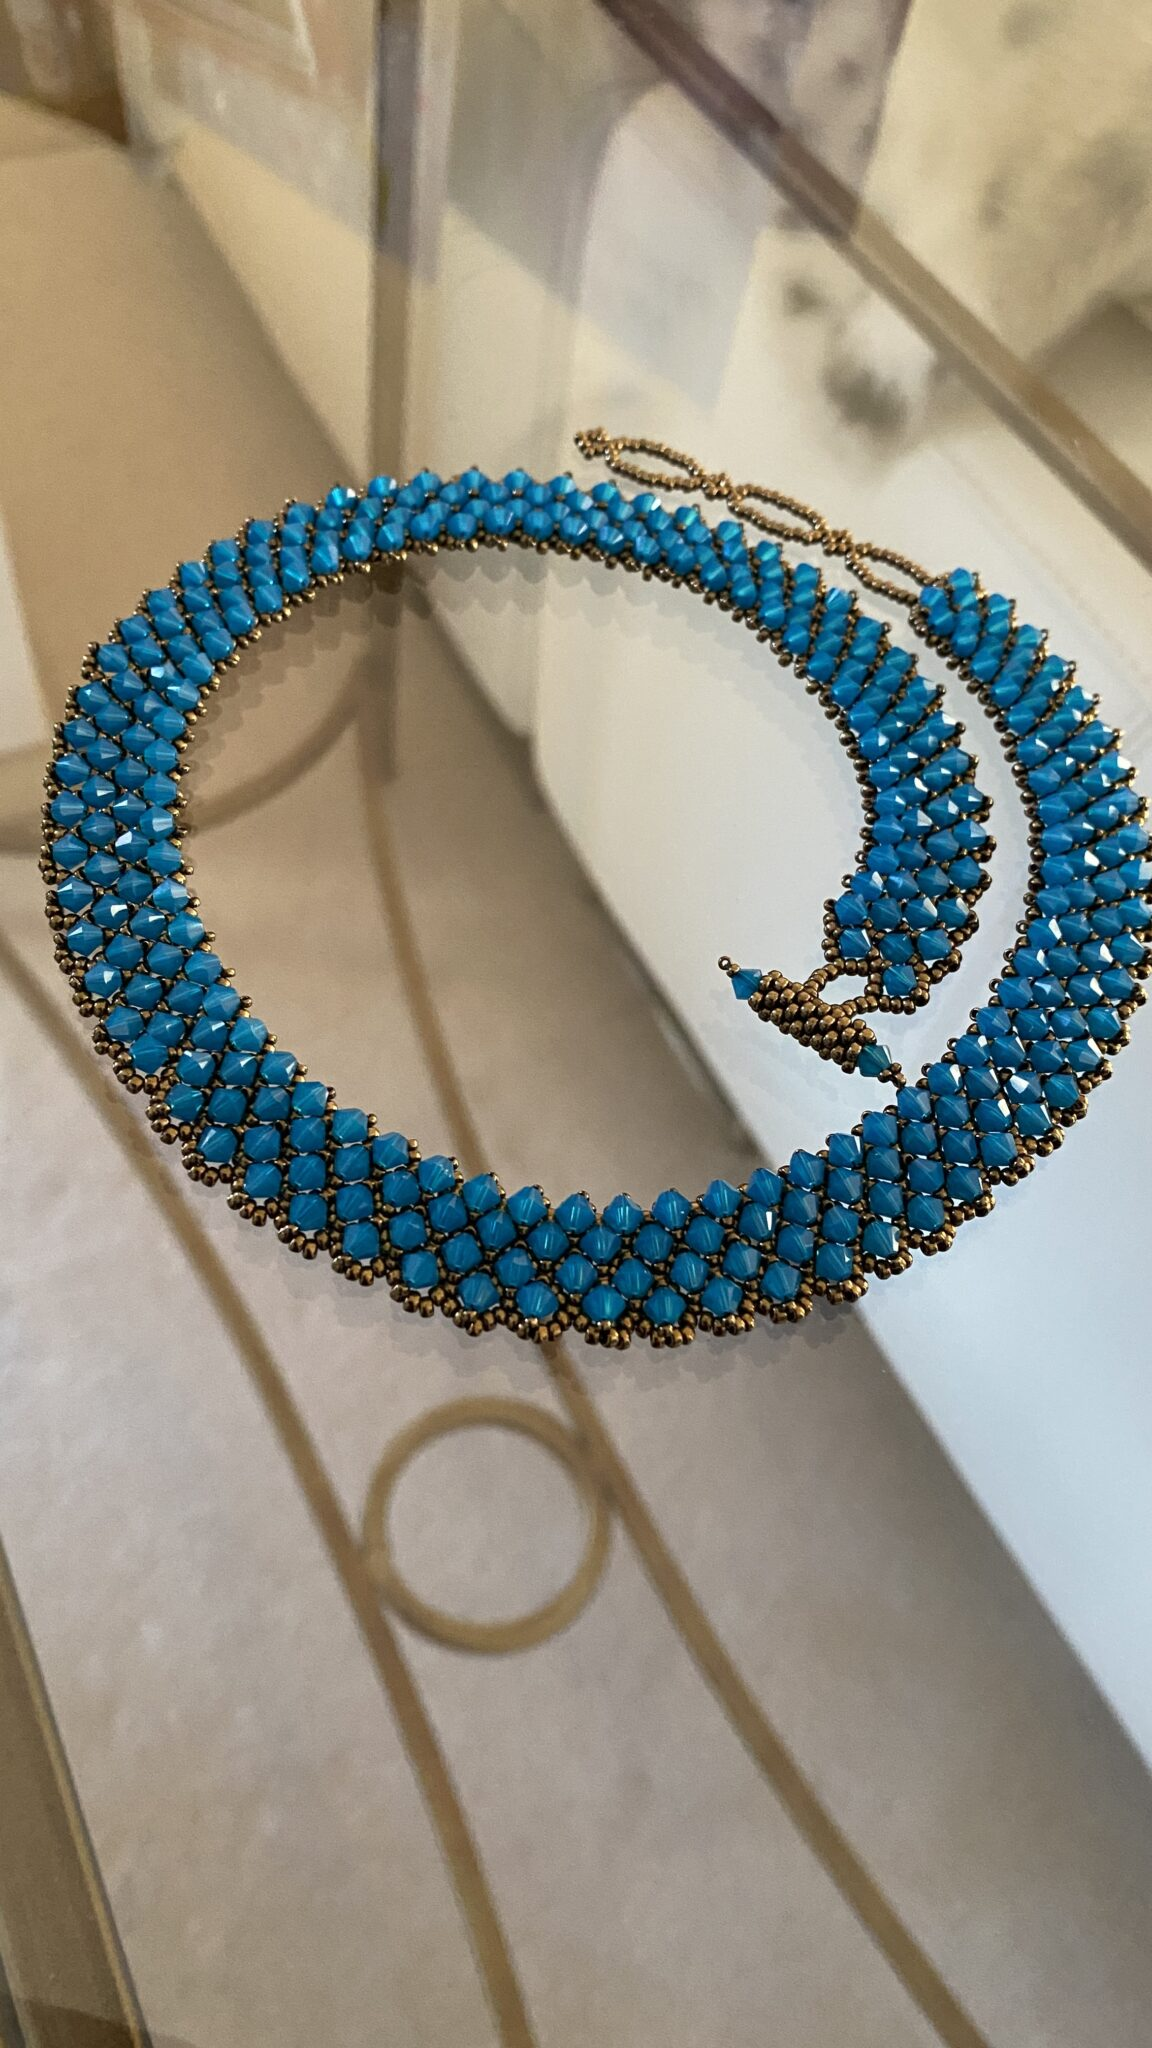 Swarovski Crystal Choker.  Handwoven By Covet And Desire